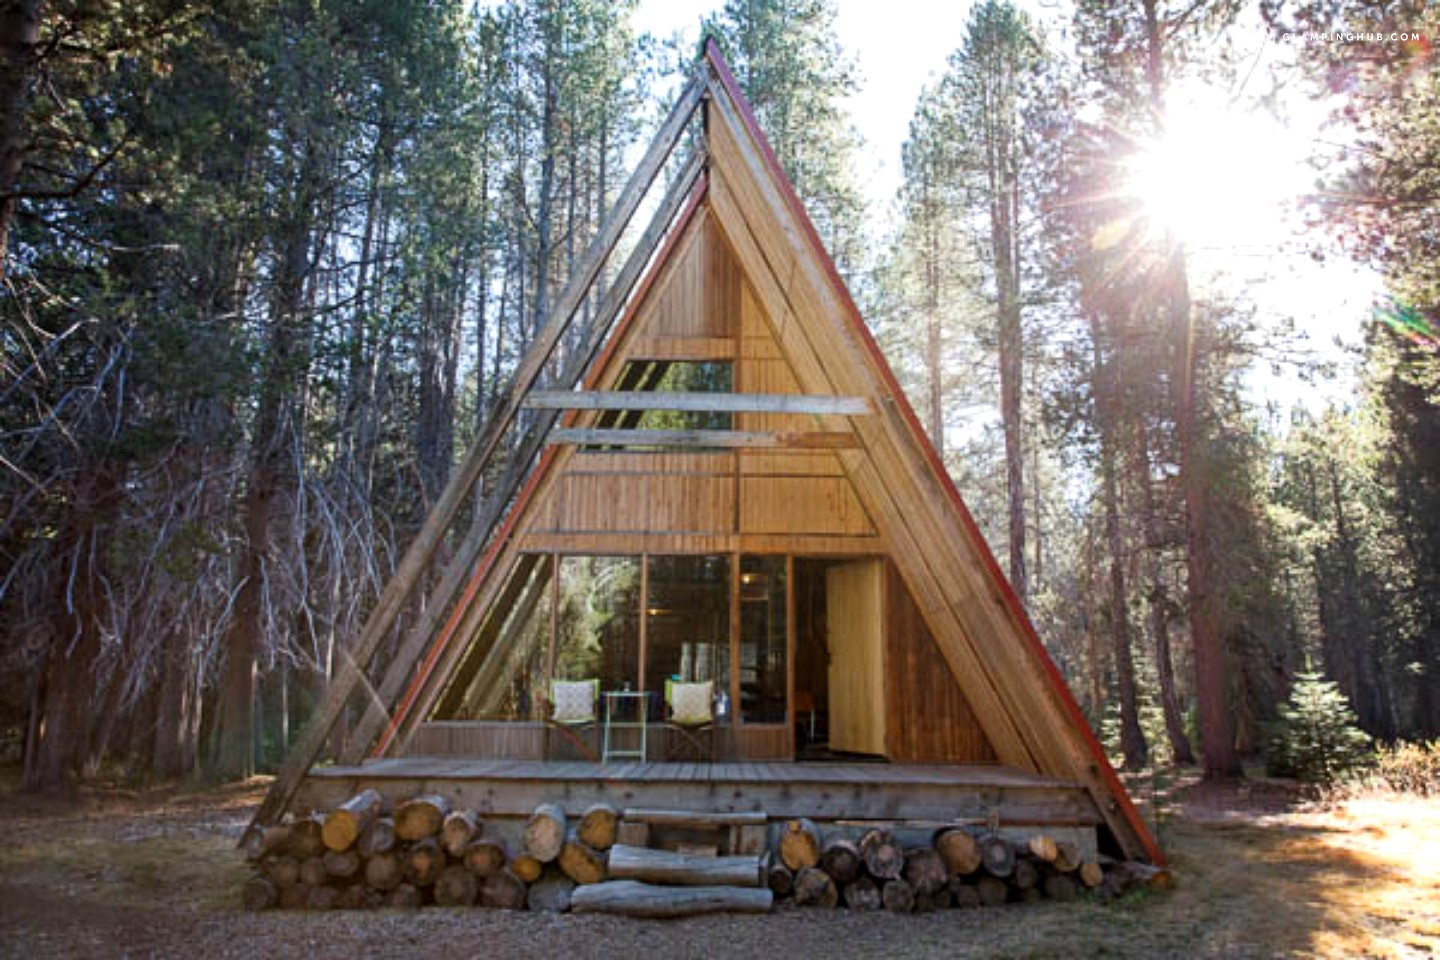 Spacious luxury cabin near yosemite national park california for How to build a house in california